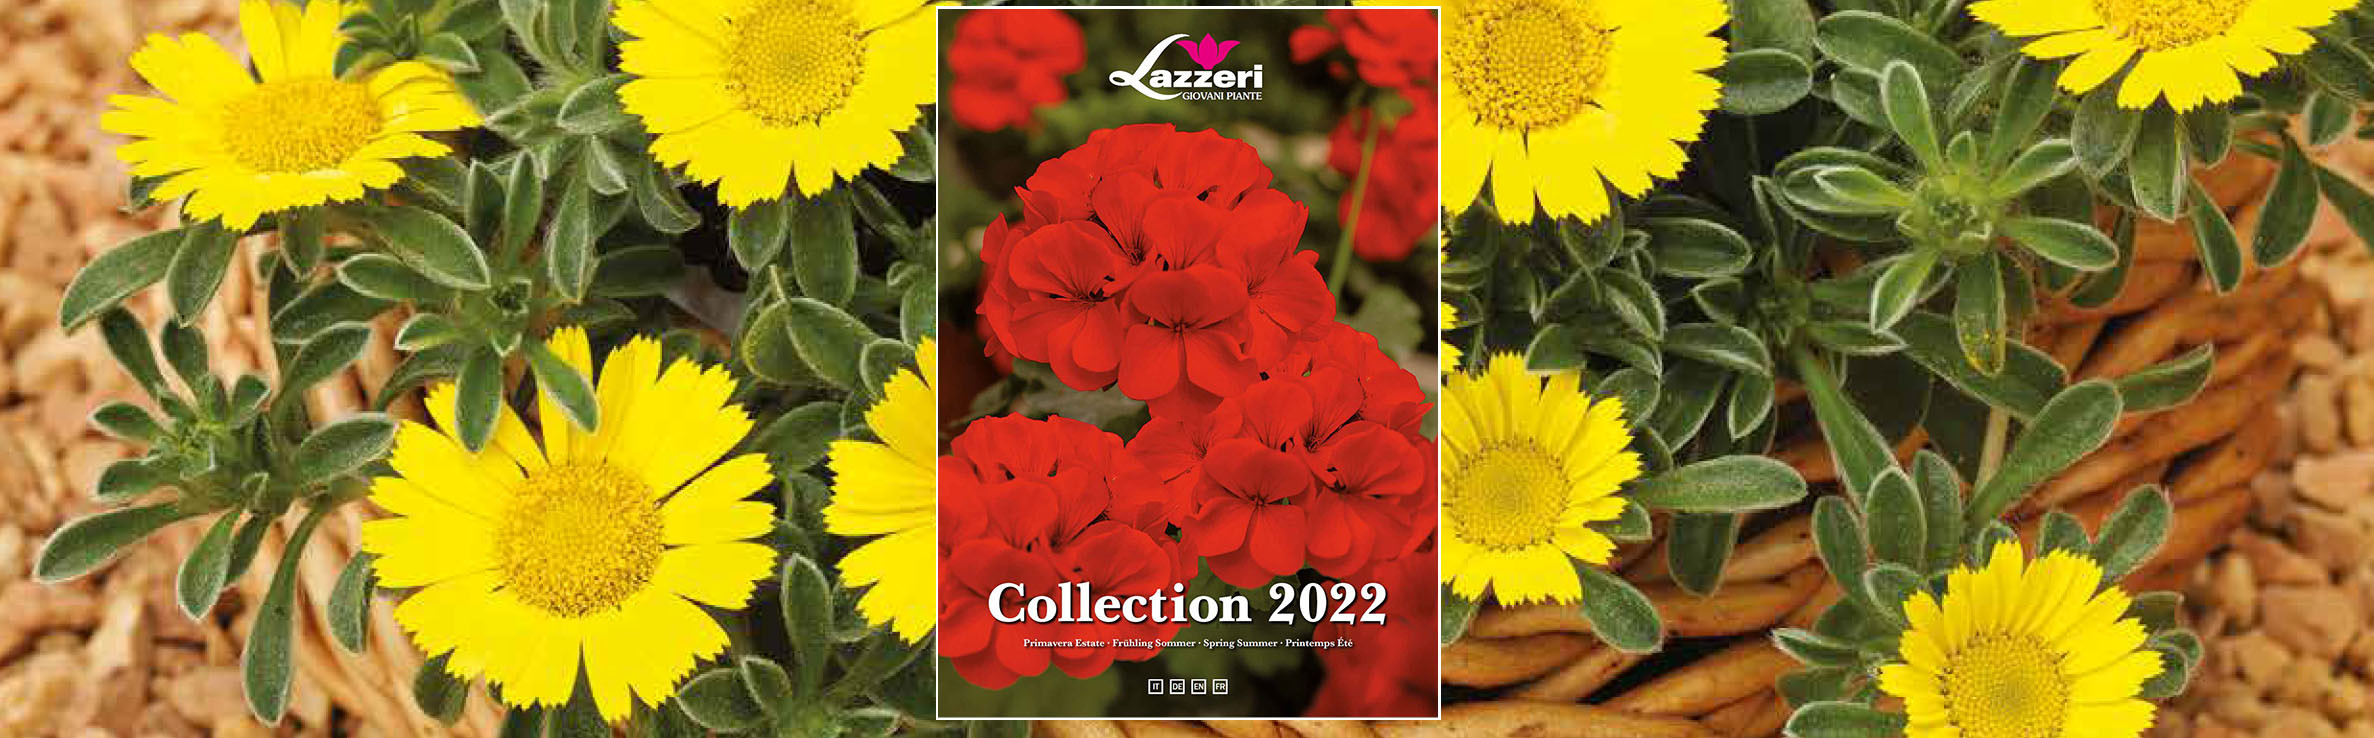 The new catalogue is online